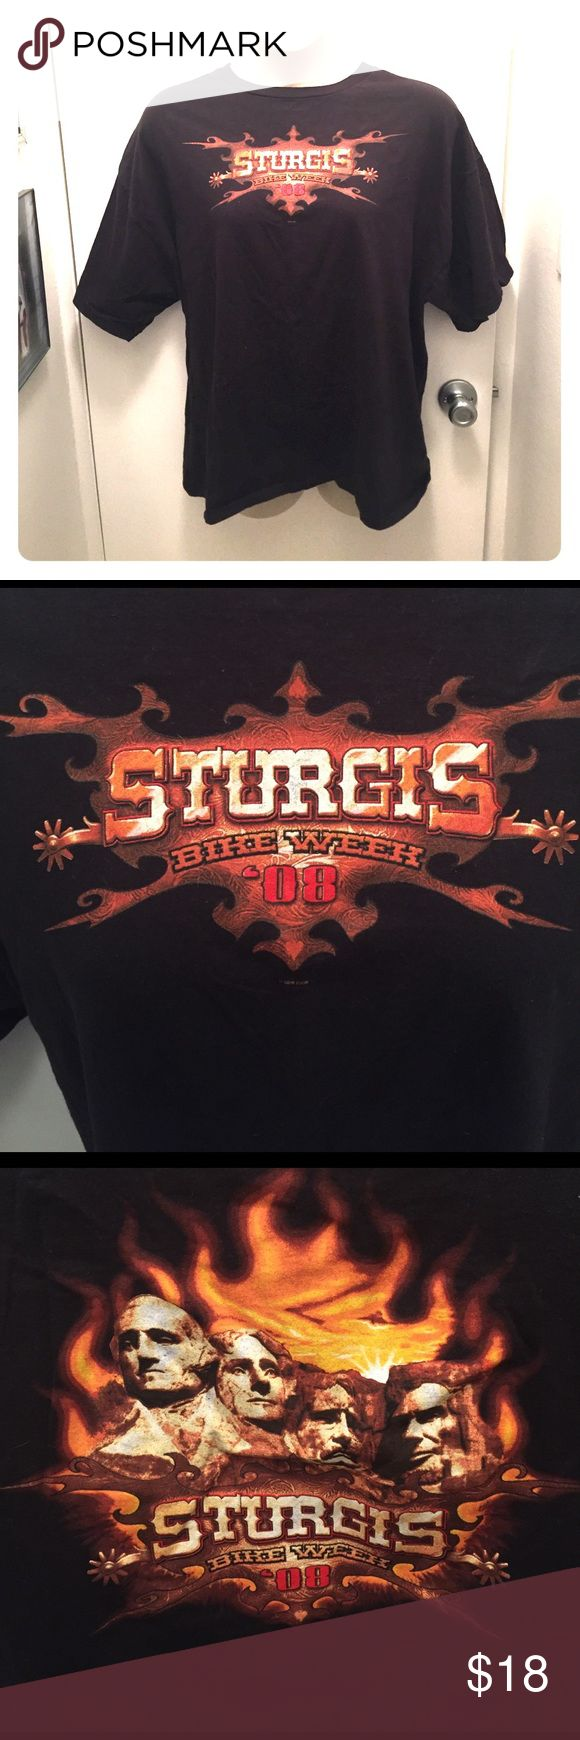 "Vintage Sturgis Tee Great condition, two tiny little spots where black dye has faded, see last photo for an example. Easily covered. Front and back graphic. 56"" chest. Genuine tee from Sturgis bike week 2008. (Apologies for the female mannequin, but it can be a unisex tee.) Delta Shirts Tees - Short Sleeve"